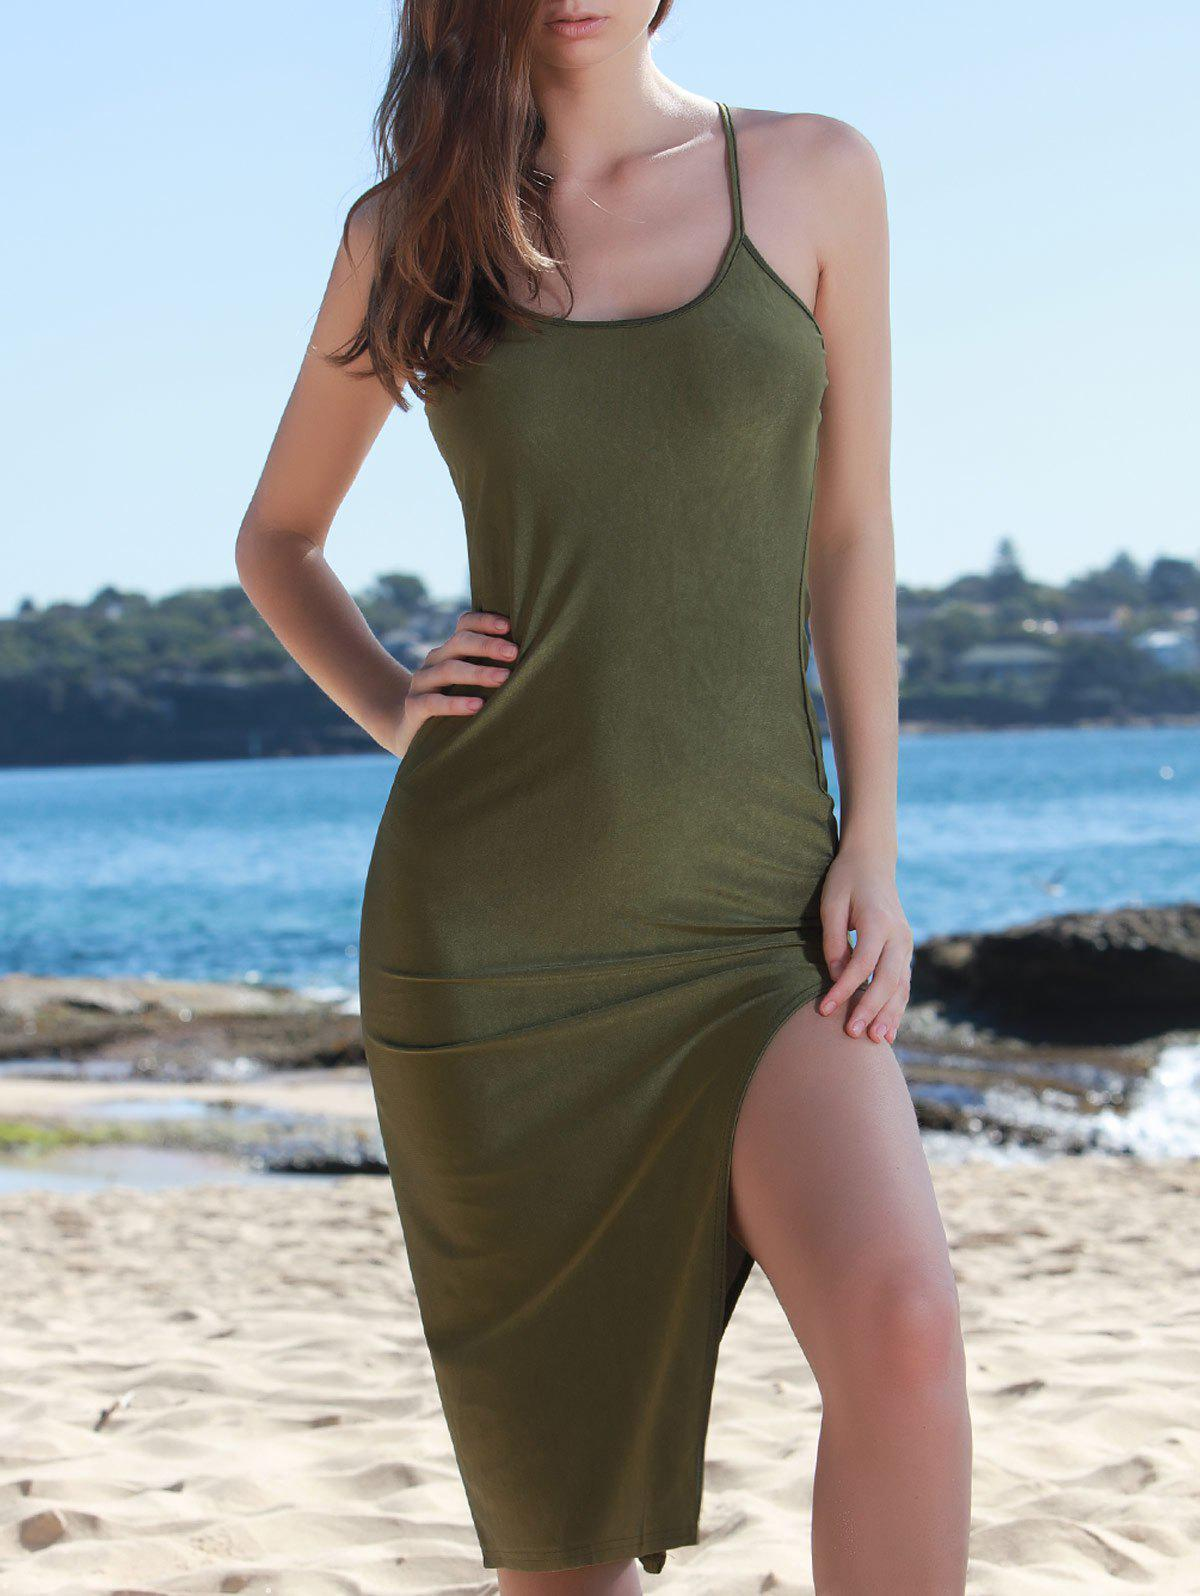 Chic Solid Color Spaghetti Strap Back Criss-Cross Side Slit Bodycon Dress For WomenWomen<br><br><br>Size: S<br>Color: ARMY GREEN